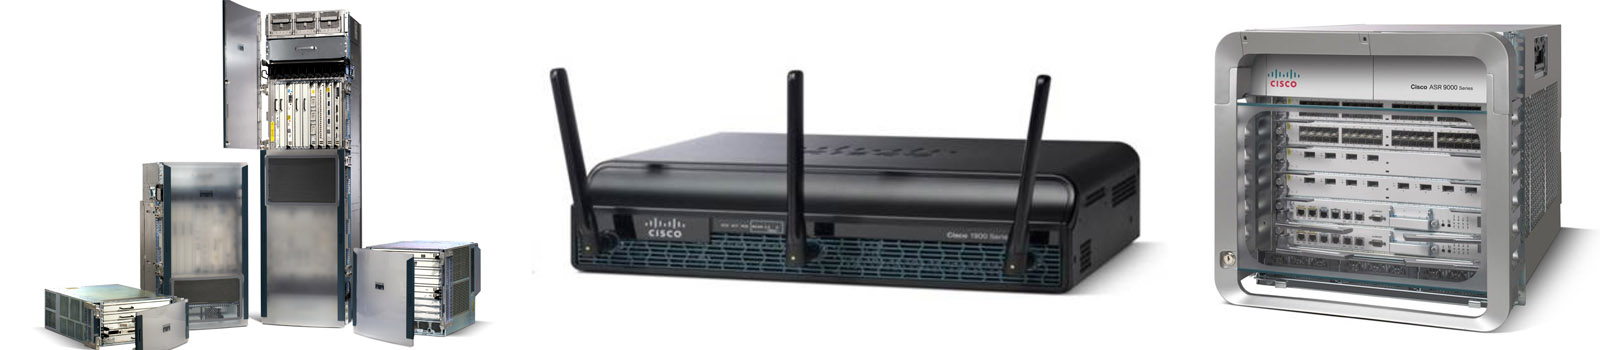 3G Network Solutions | 9980166186 | refurbished cisco switches